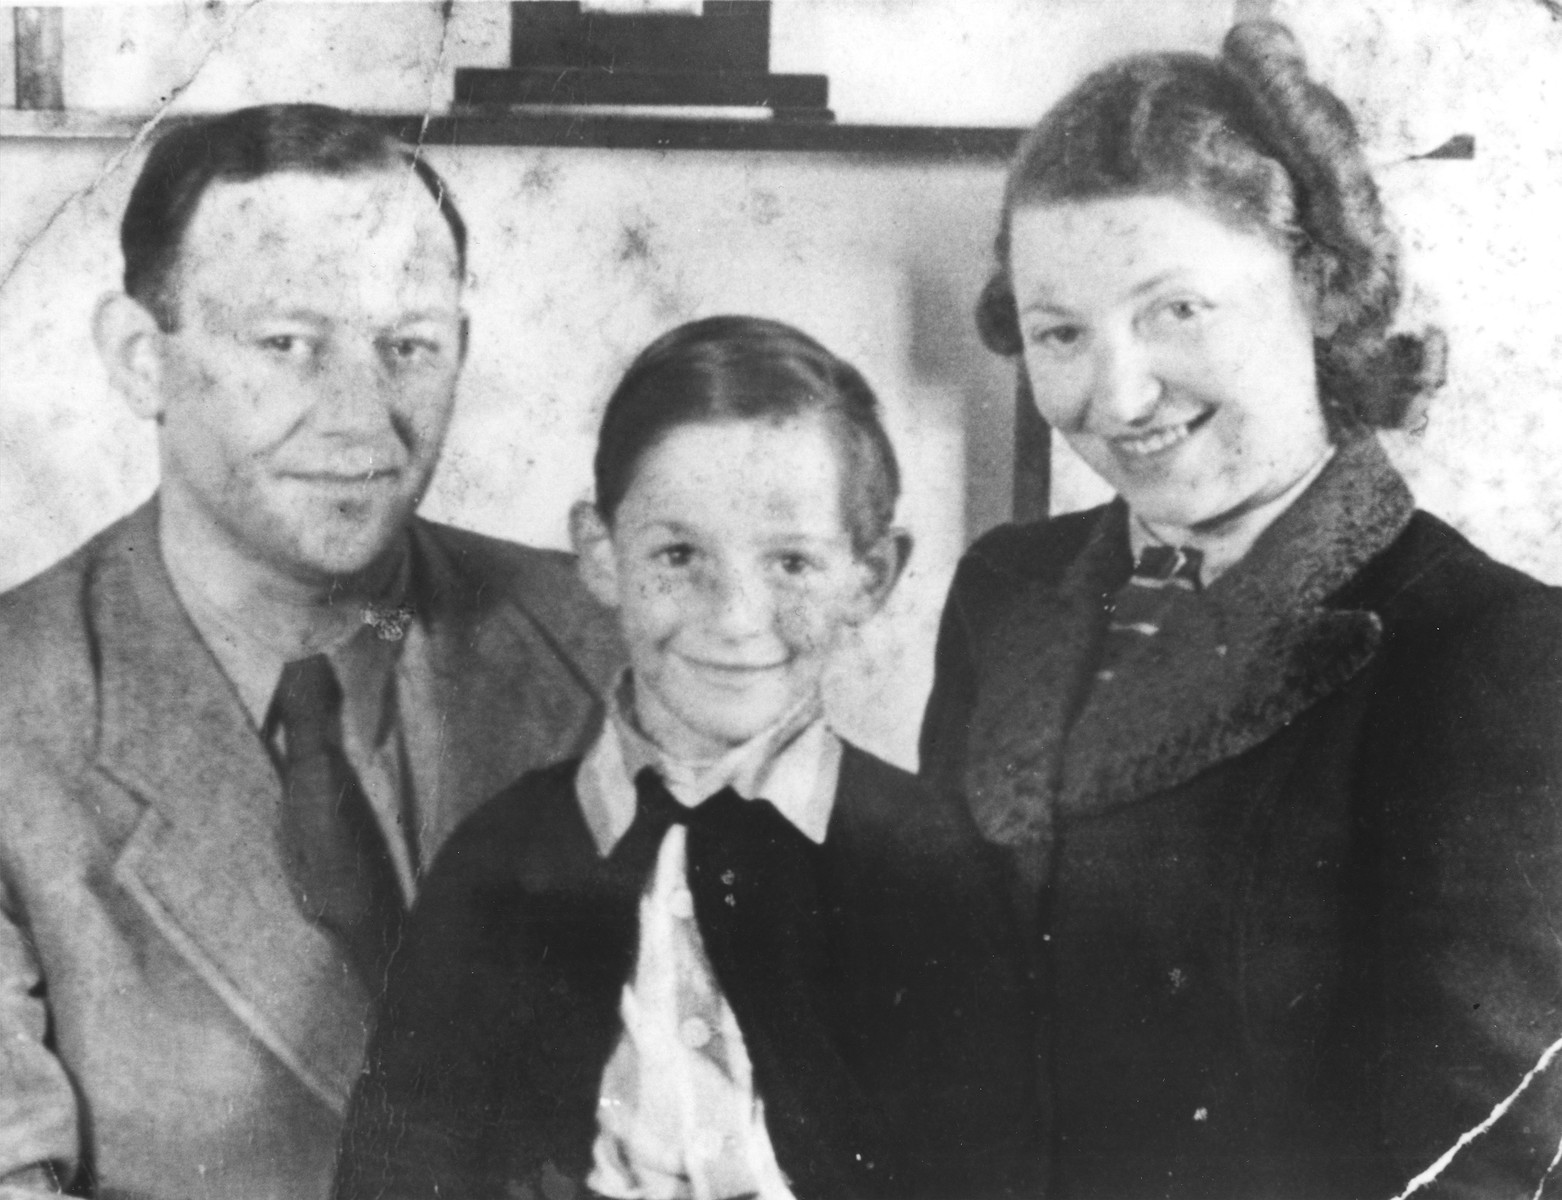 Michael Fink and his parents Manfred and Herta in the the Westerbork internment camp.